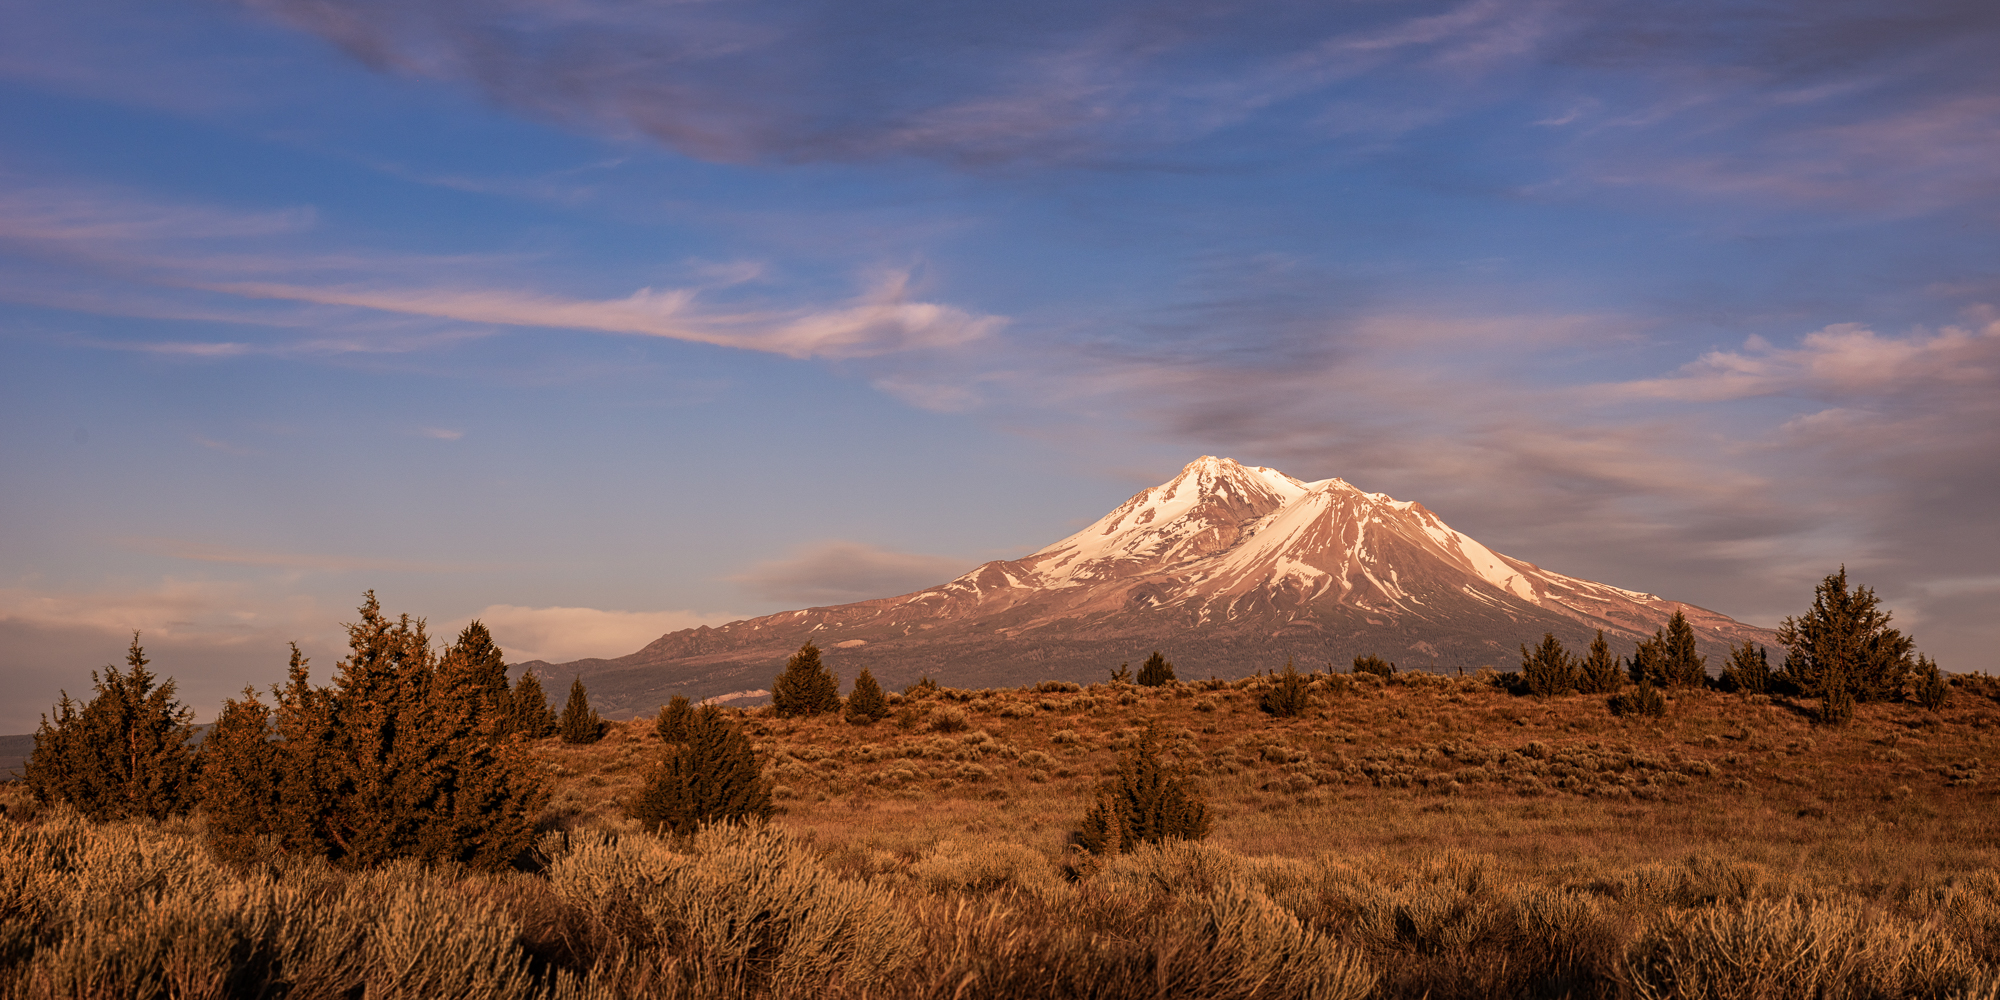 Mt. Shasta bathing in golden, glorious light a few minutes before sunset.